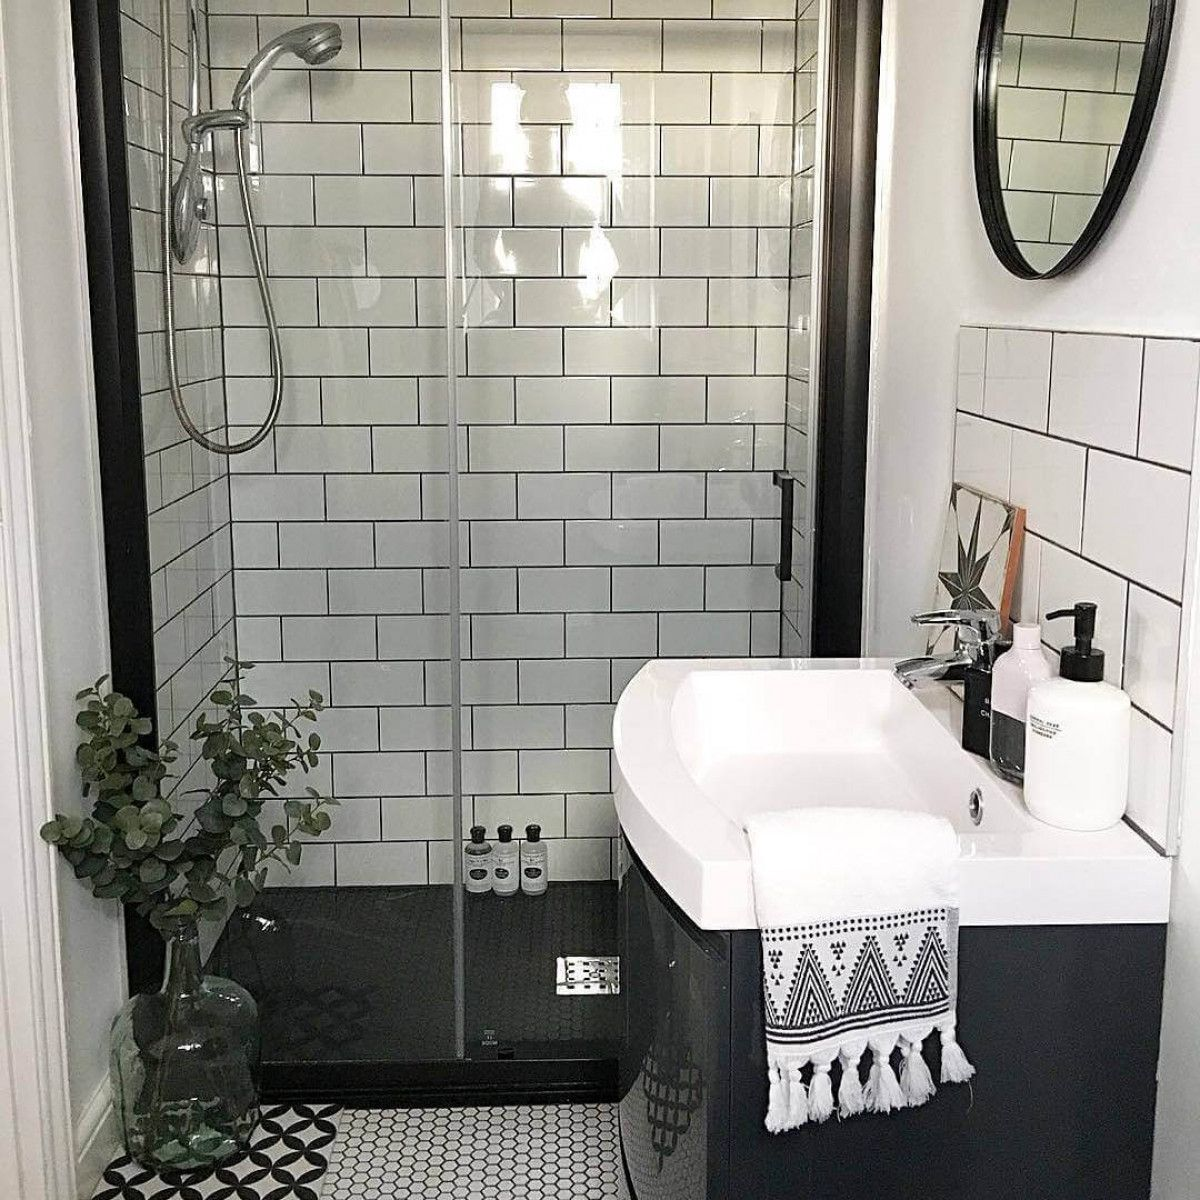 11 Brilliant Walk-in Shower Ideas For Small Bathrooms In